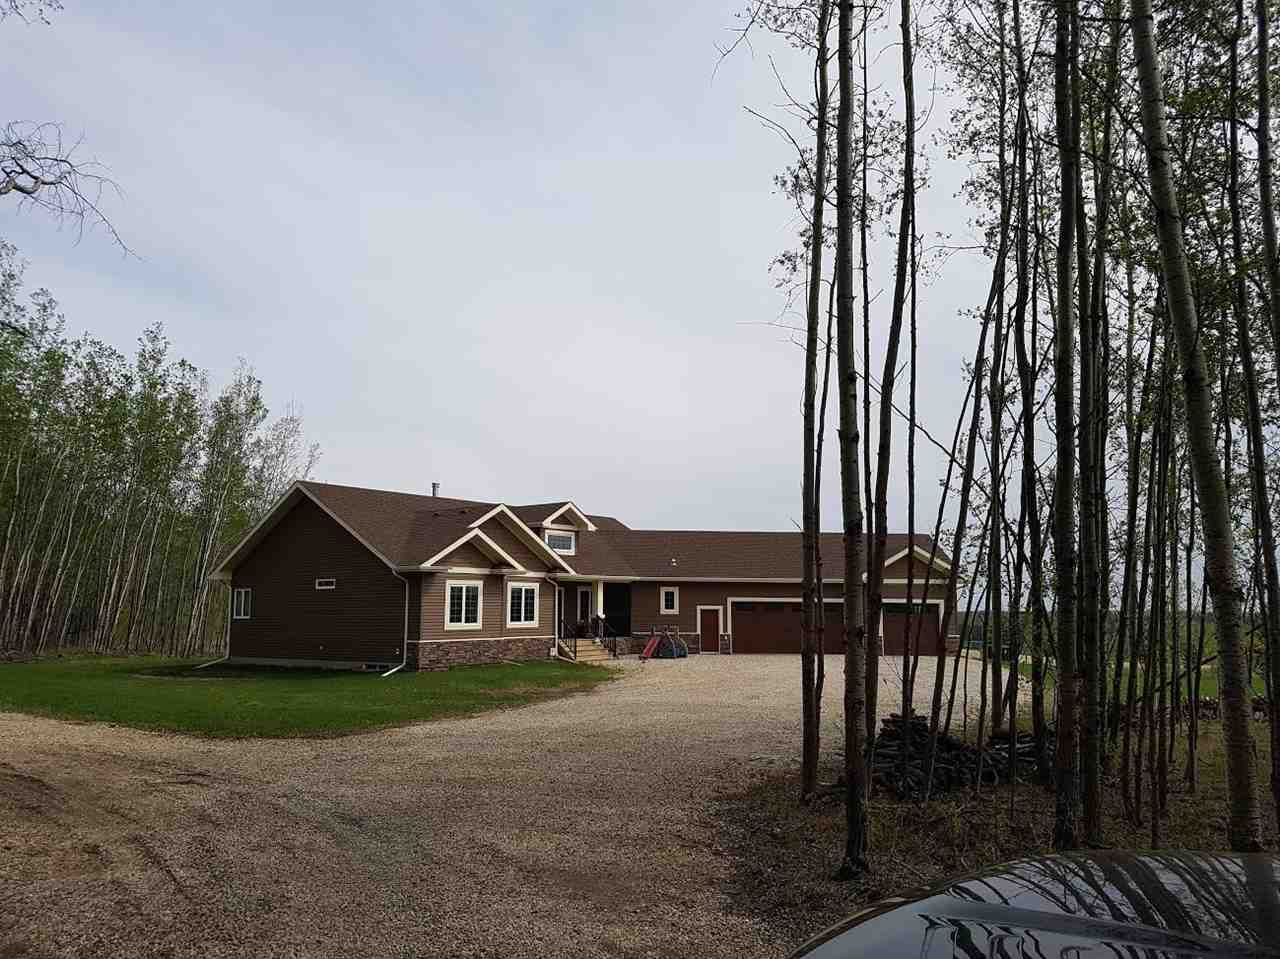 Main Photo: 31 1319 TWP RD 510: Rural Parkland County House for sale : MLS®# E4138639